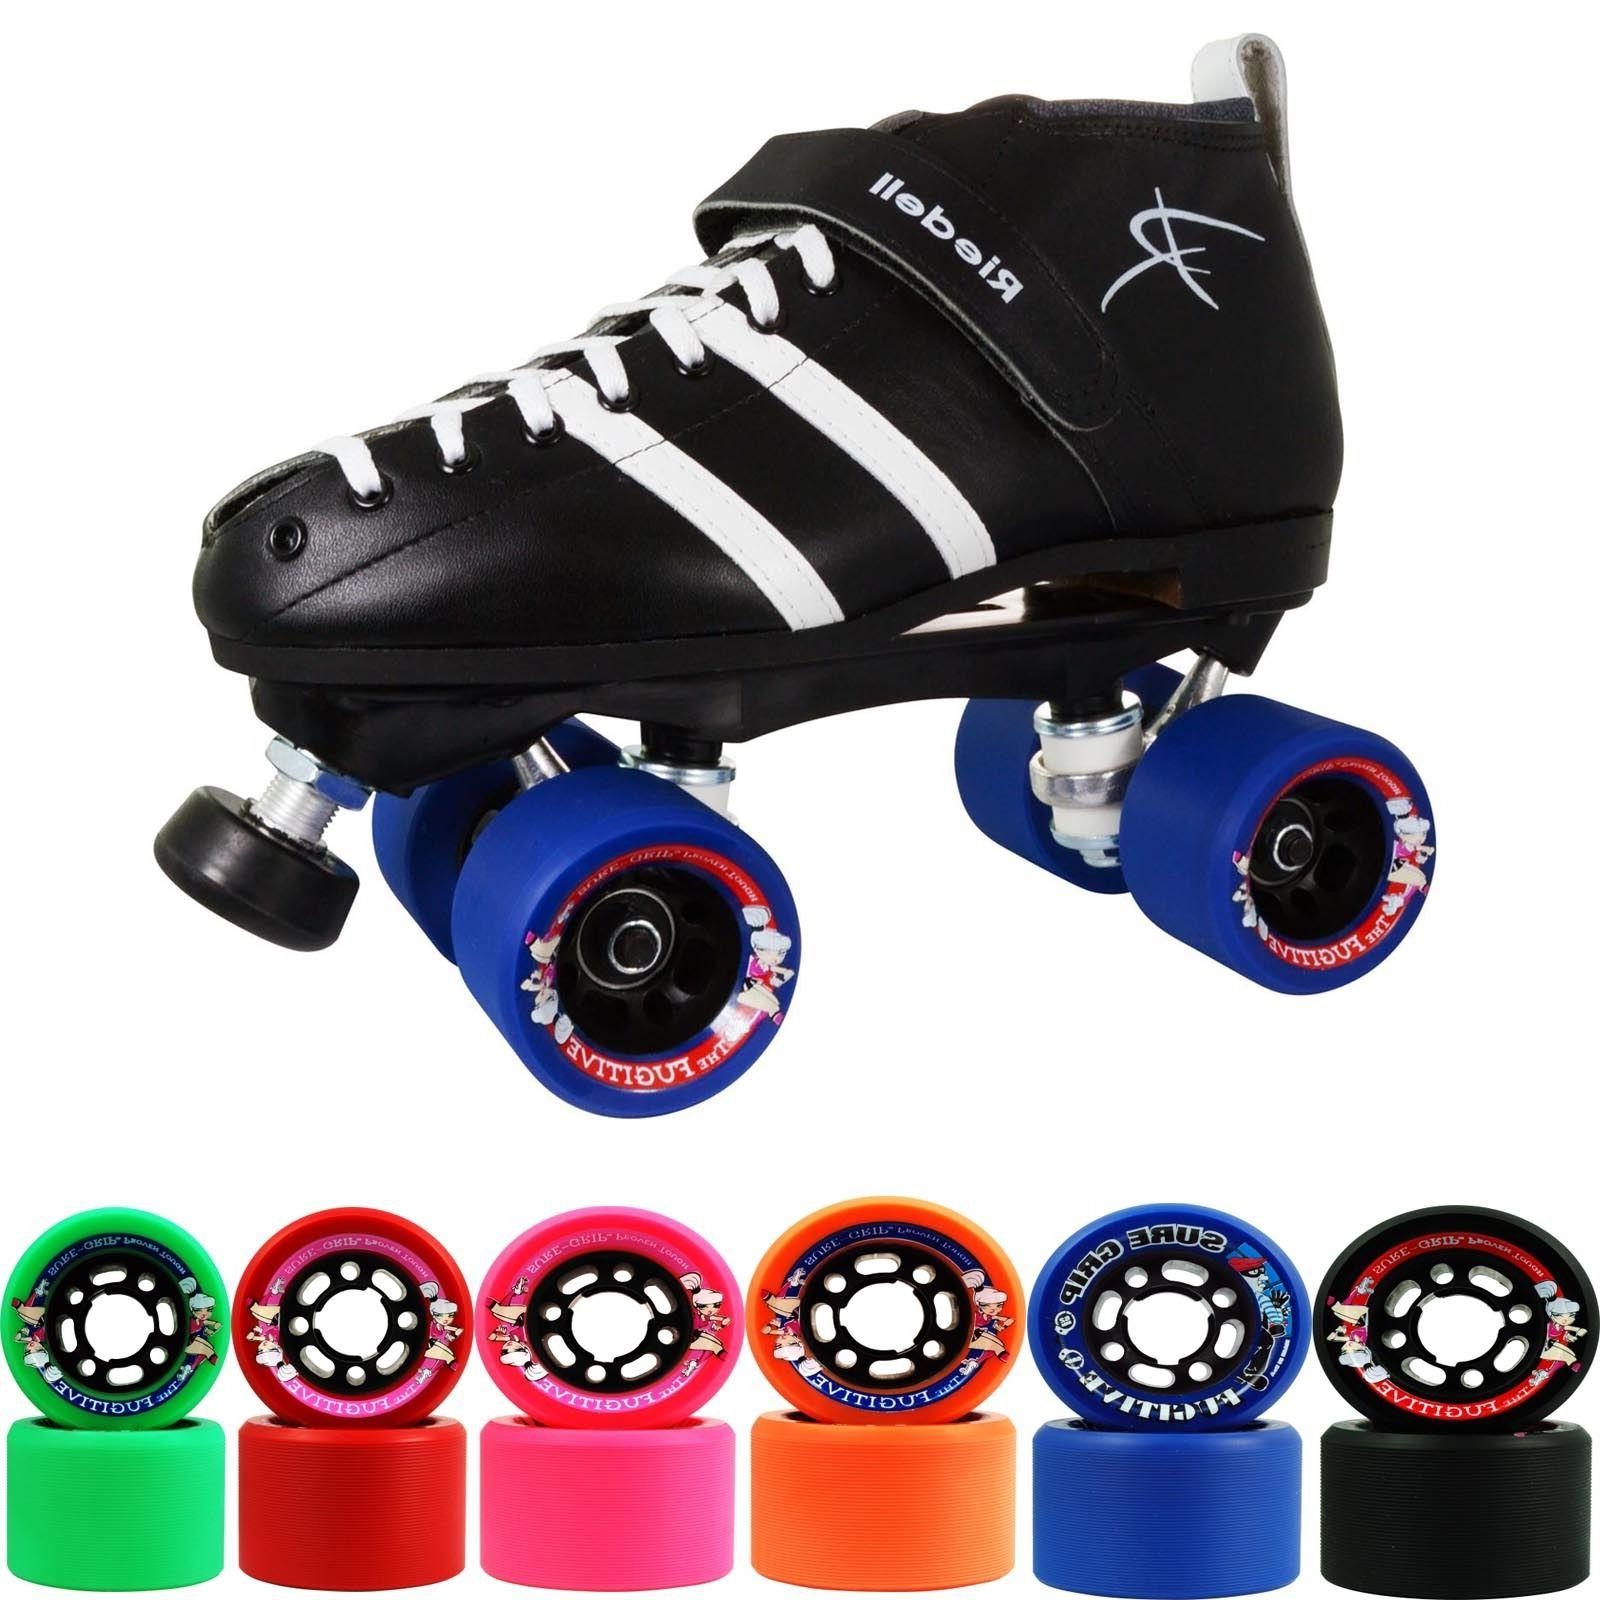 indoor speed fast roller skates 265 fugitive